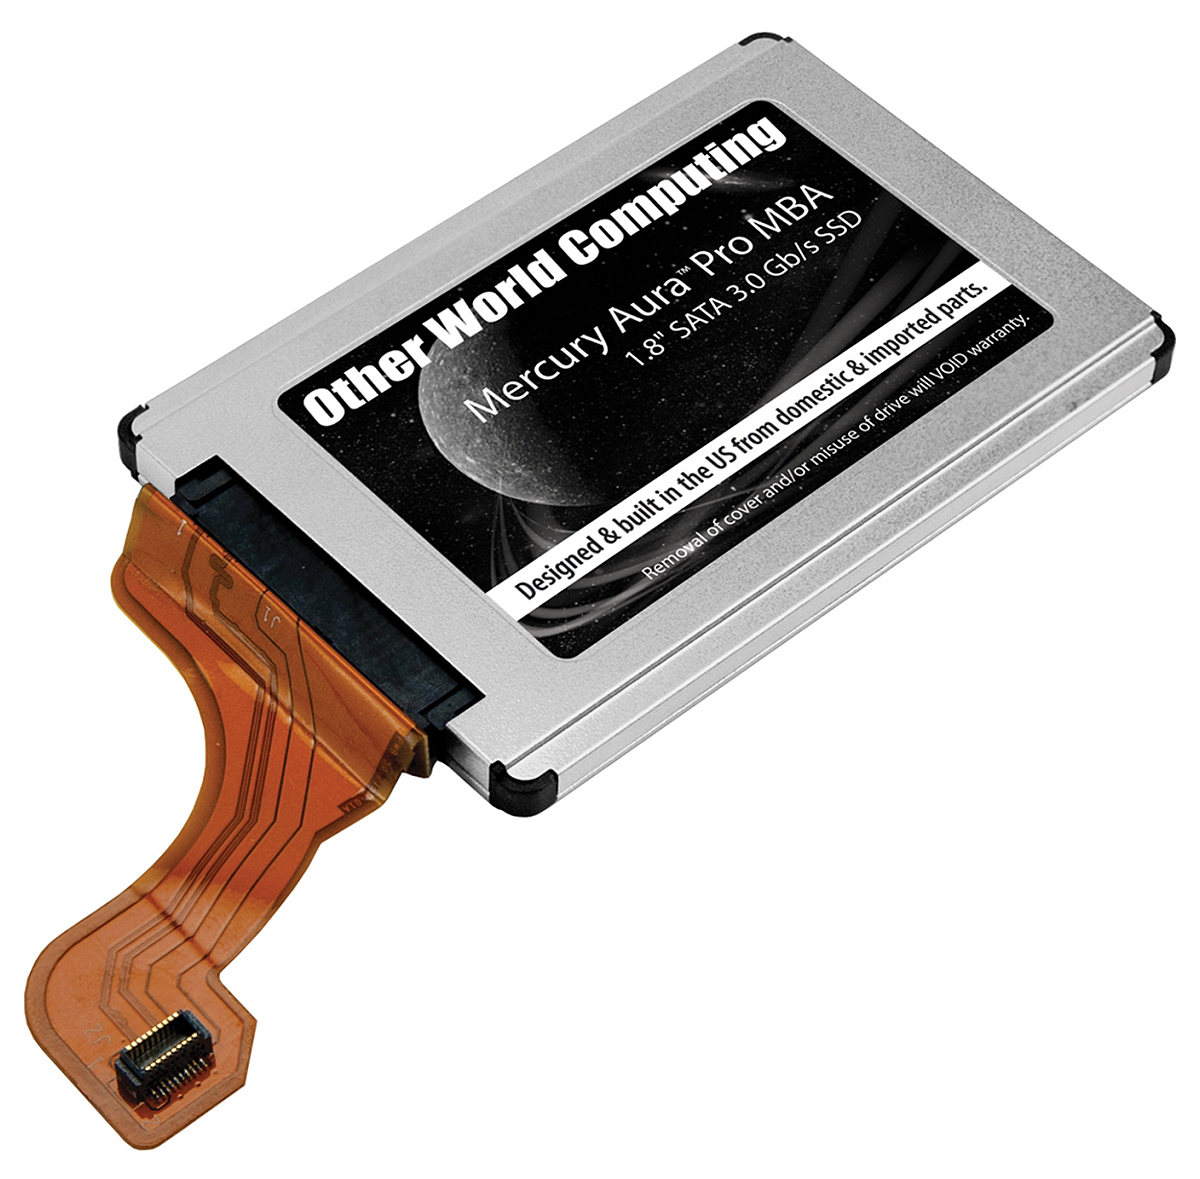 OWC SSD from MemoryC com